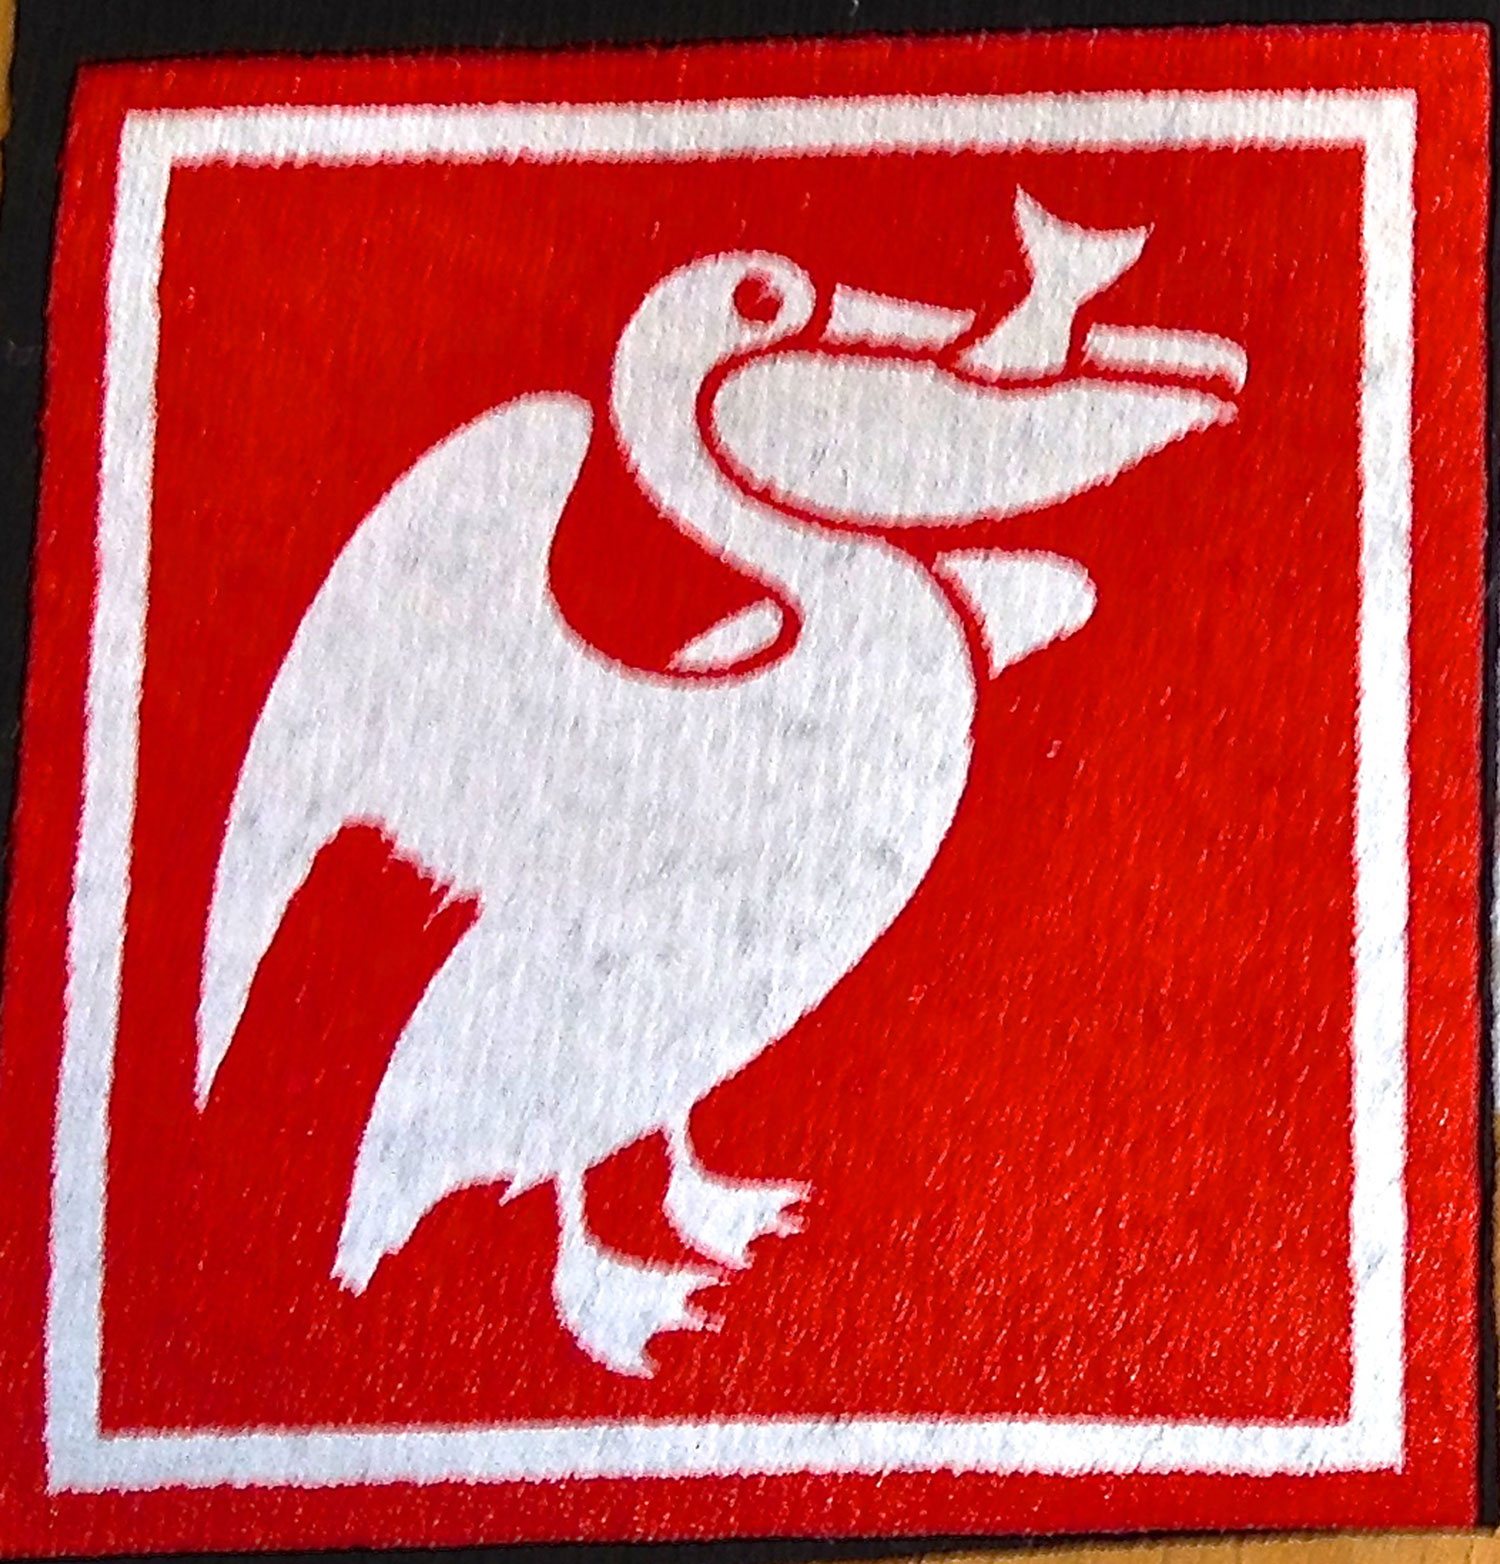 The red in the pelican print has 2 layers of white under it